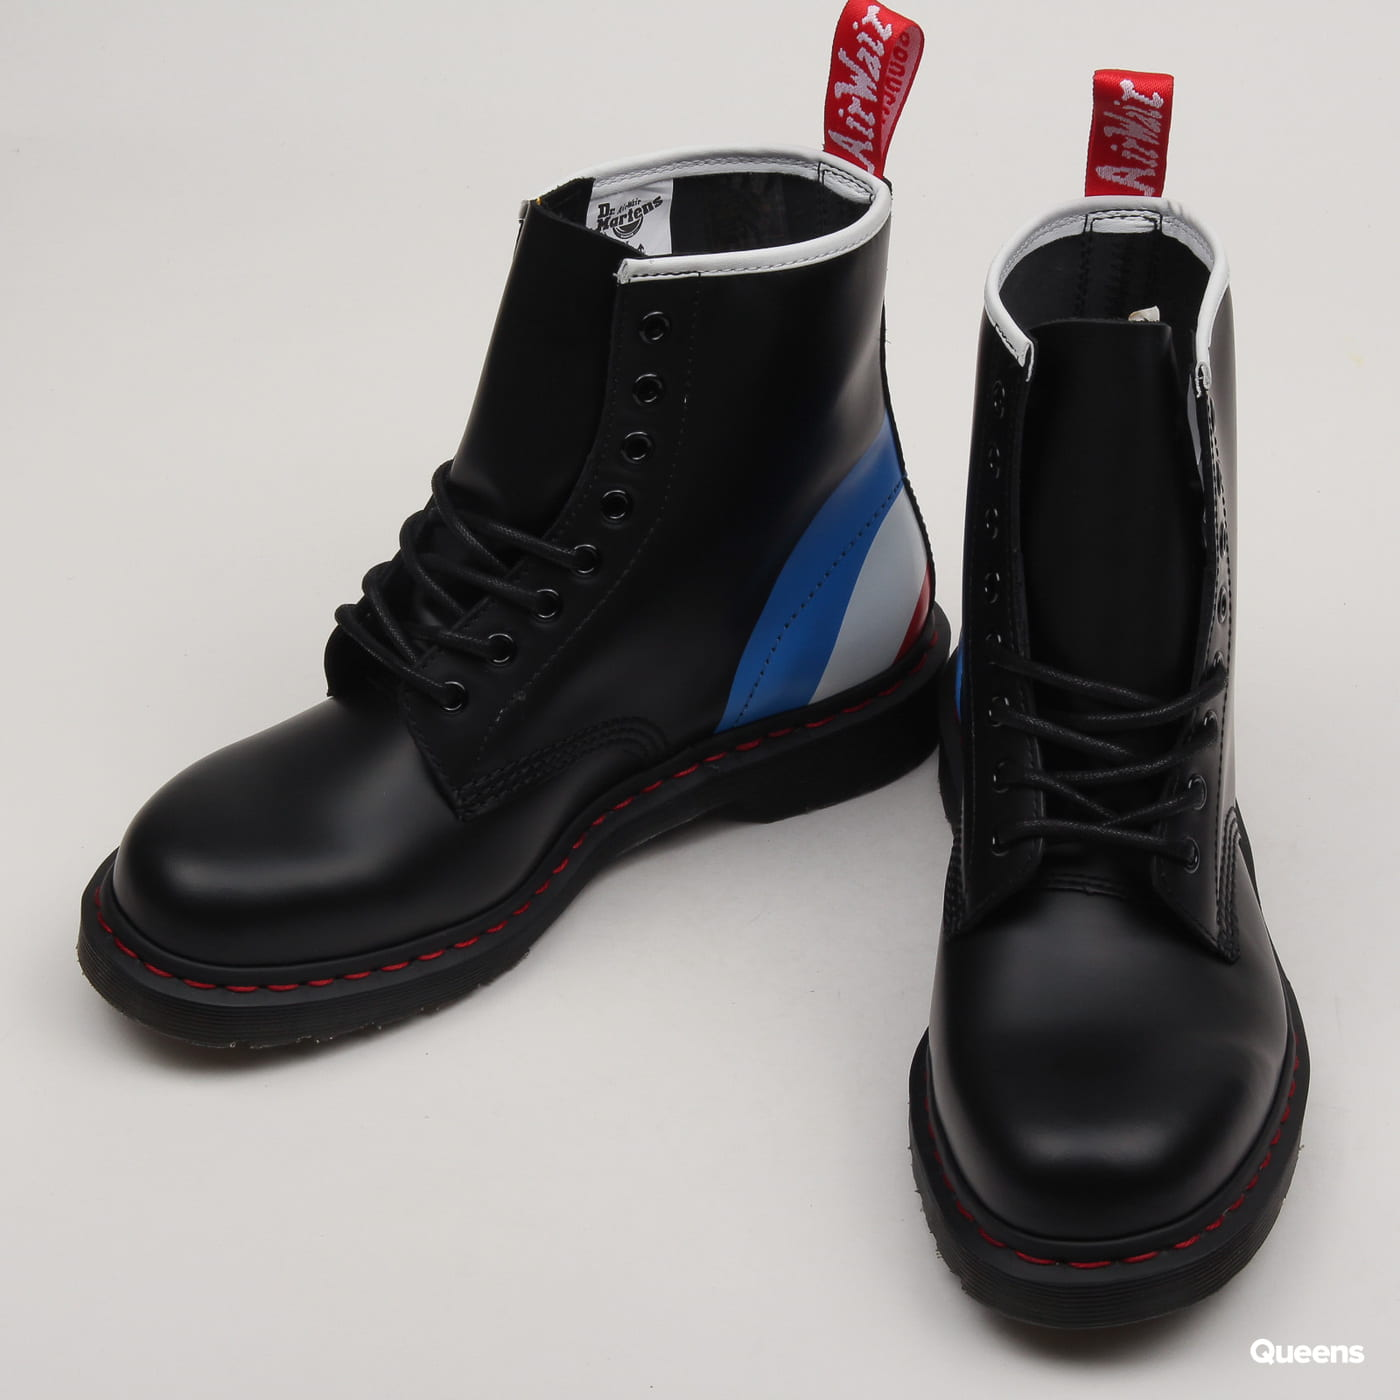 Dr. Martens Dr. Martens x The Who 1460 black target smooth